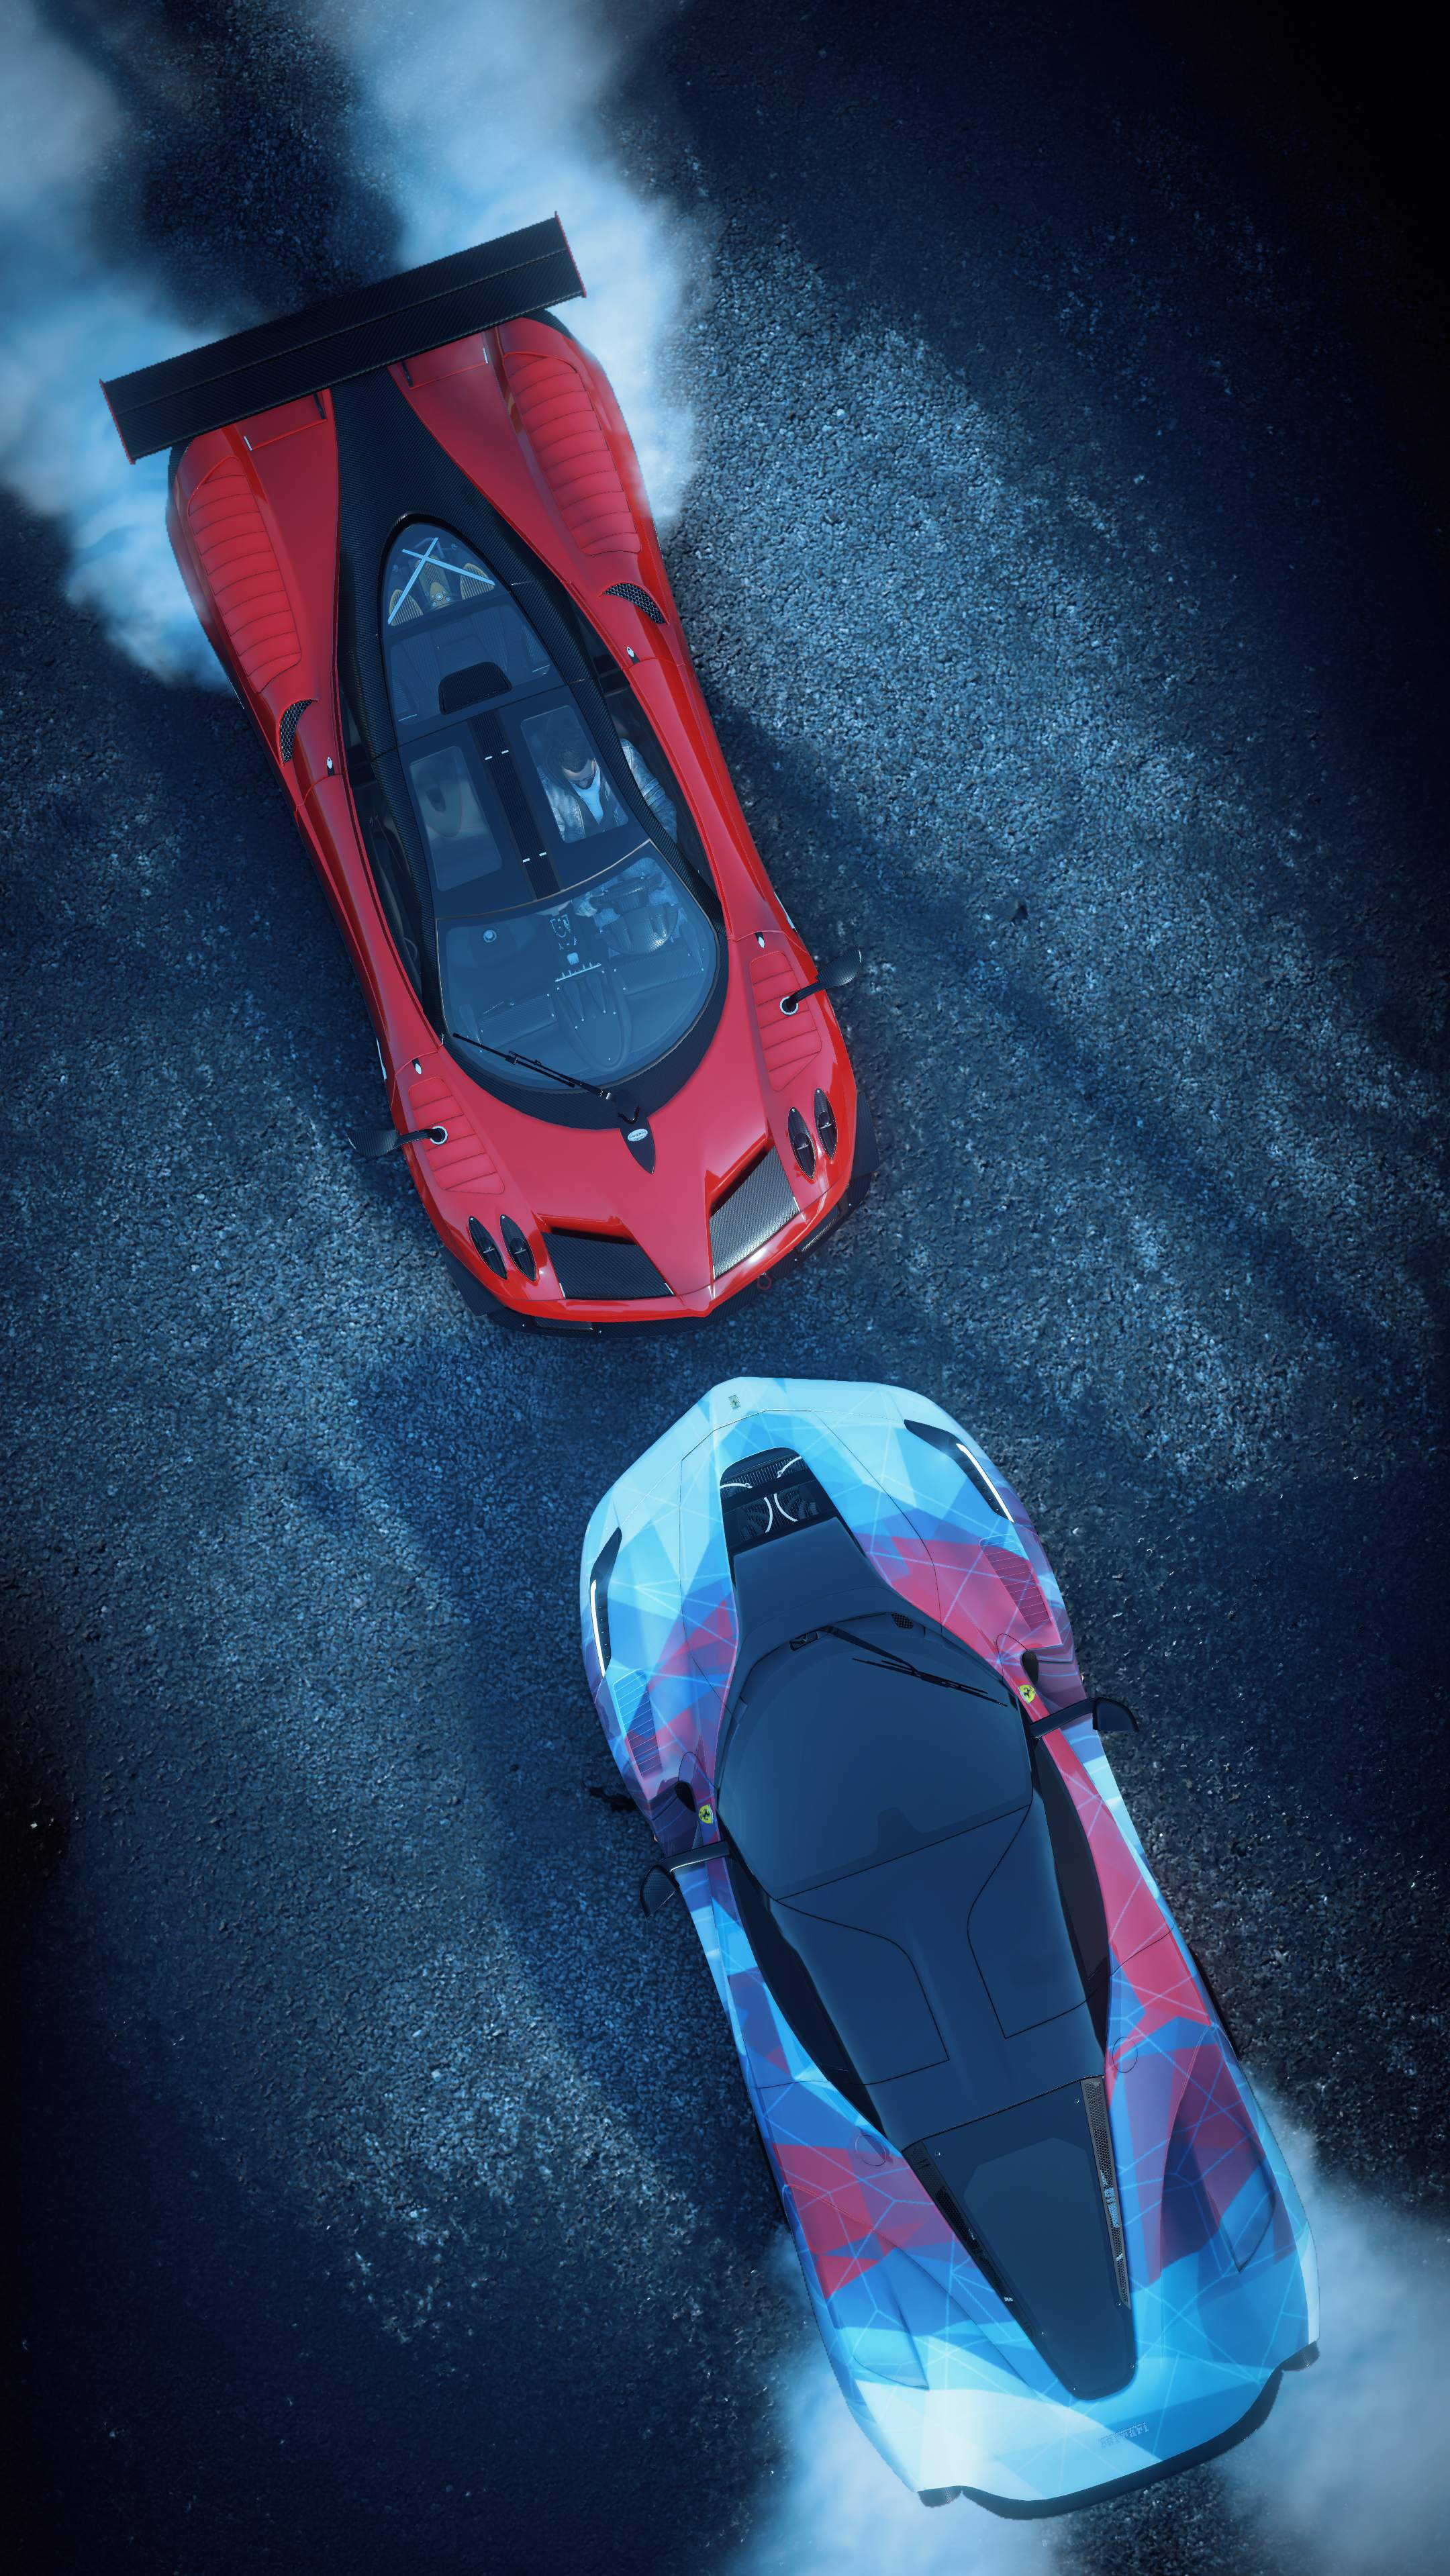 The Crew Game Ferrari Vs Pagani Iphone Wallpaper Iphone